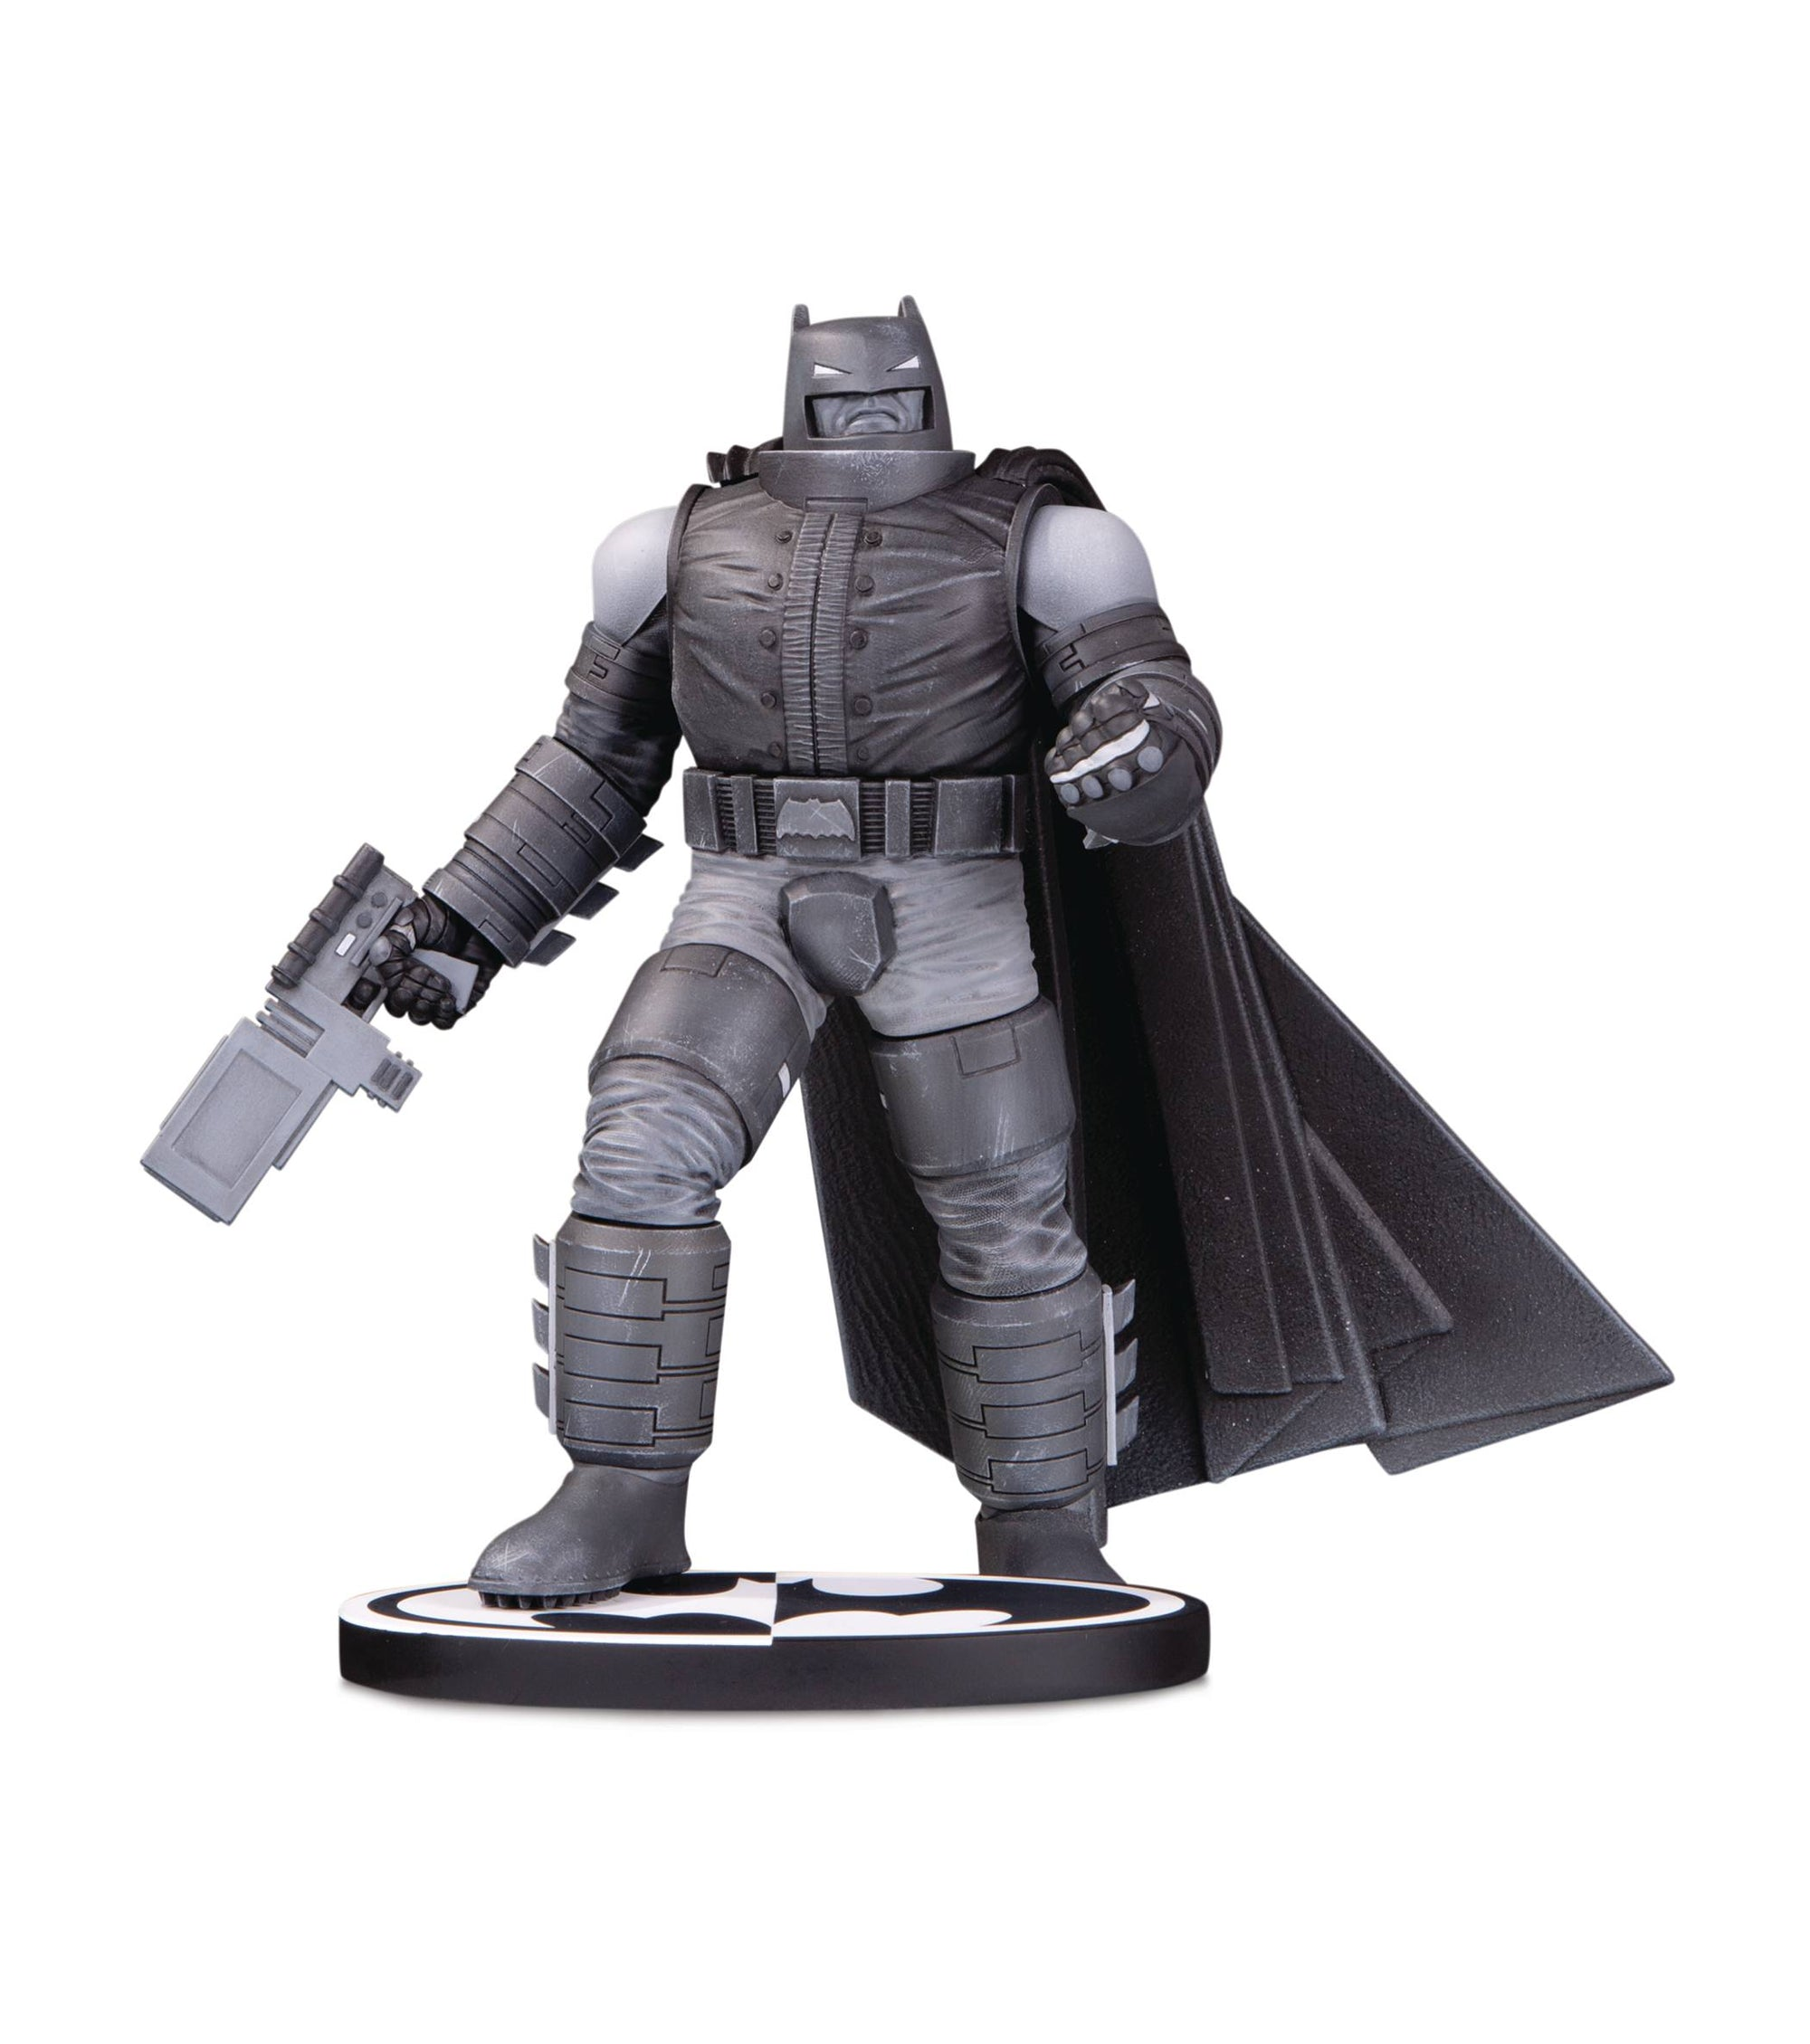 Batman Black & White Frank Miller Armored Batman Statue by DC Collectibles -DC Collectibles - India - www.superherotoystore.com